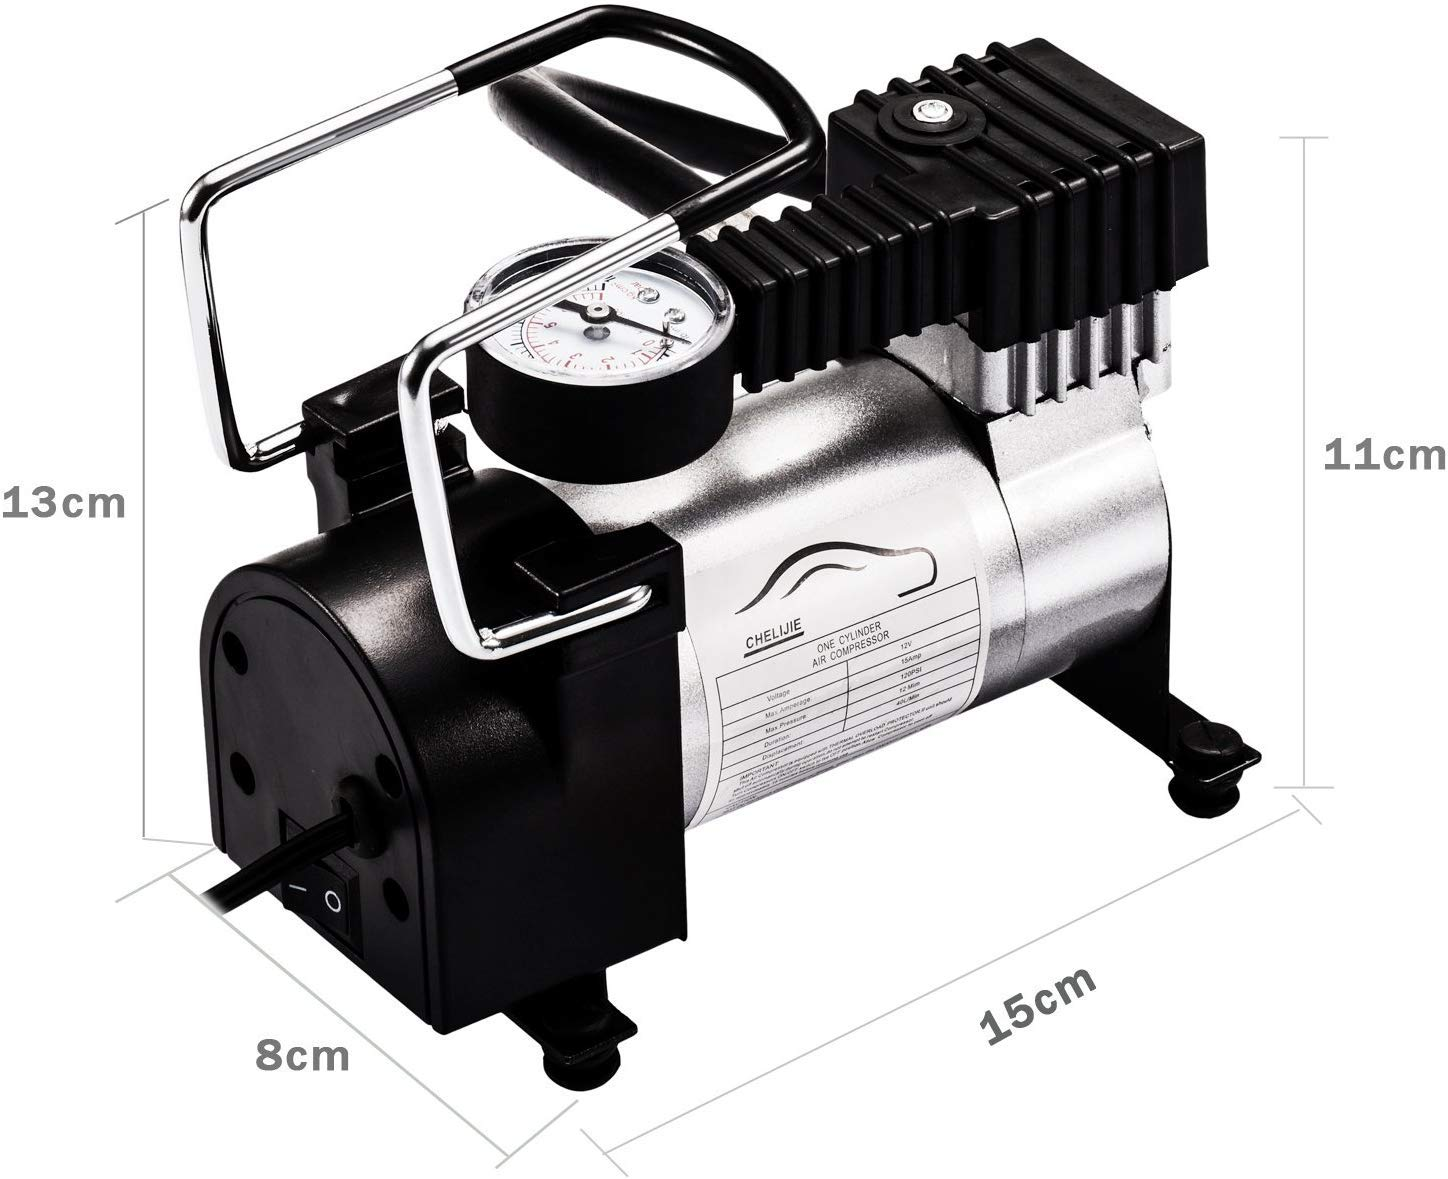 MULTI-USE HEAVY-DUTY CAR TYRE AIR COMPRESSOR INFLATOR 12V 140 PSI Air Pump Portable Air Compressors